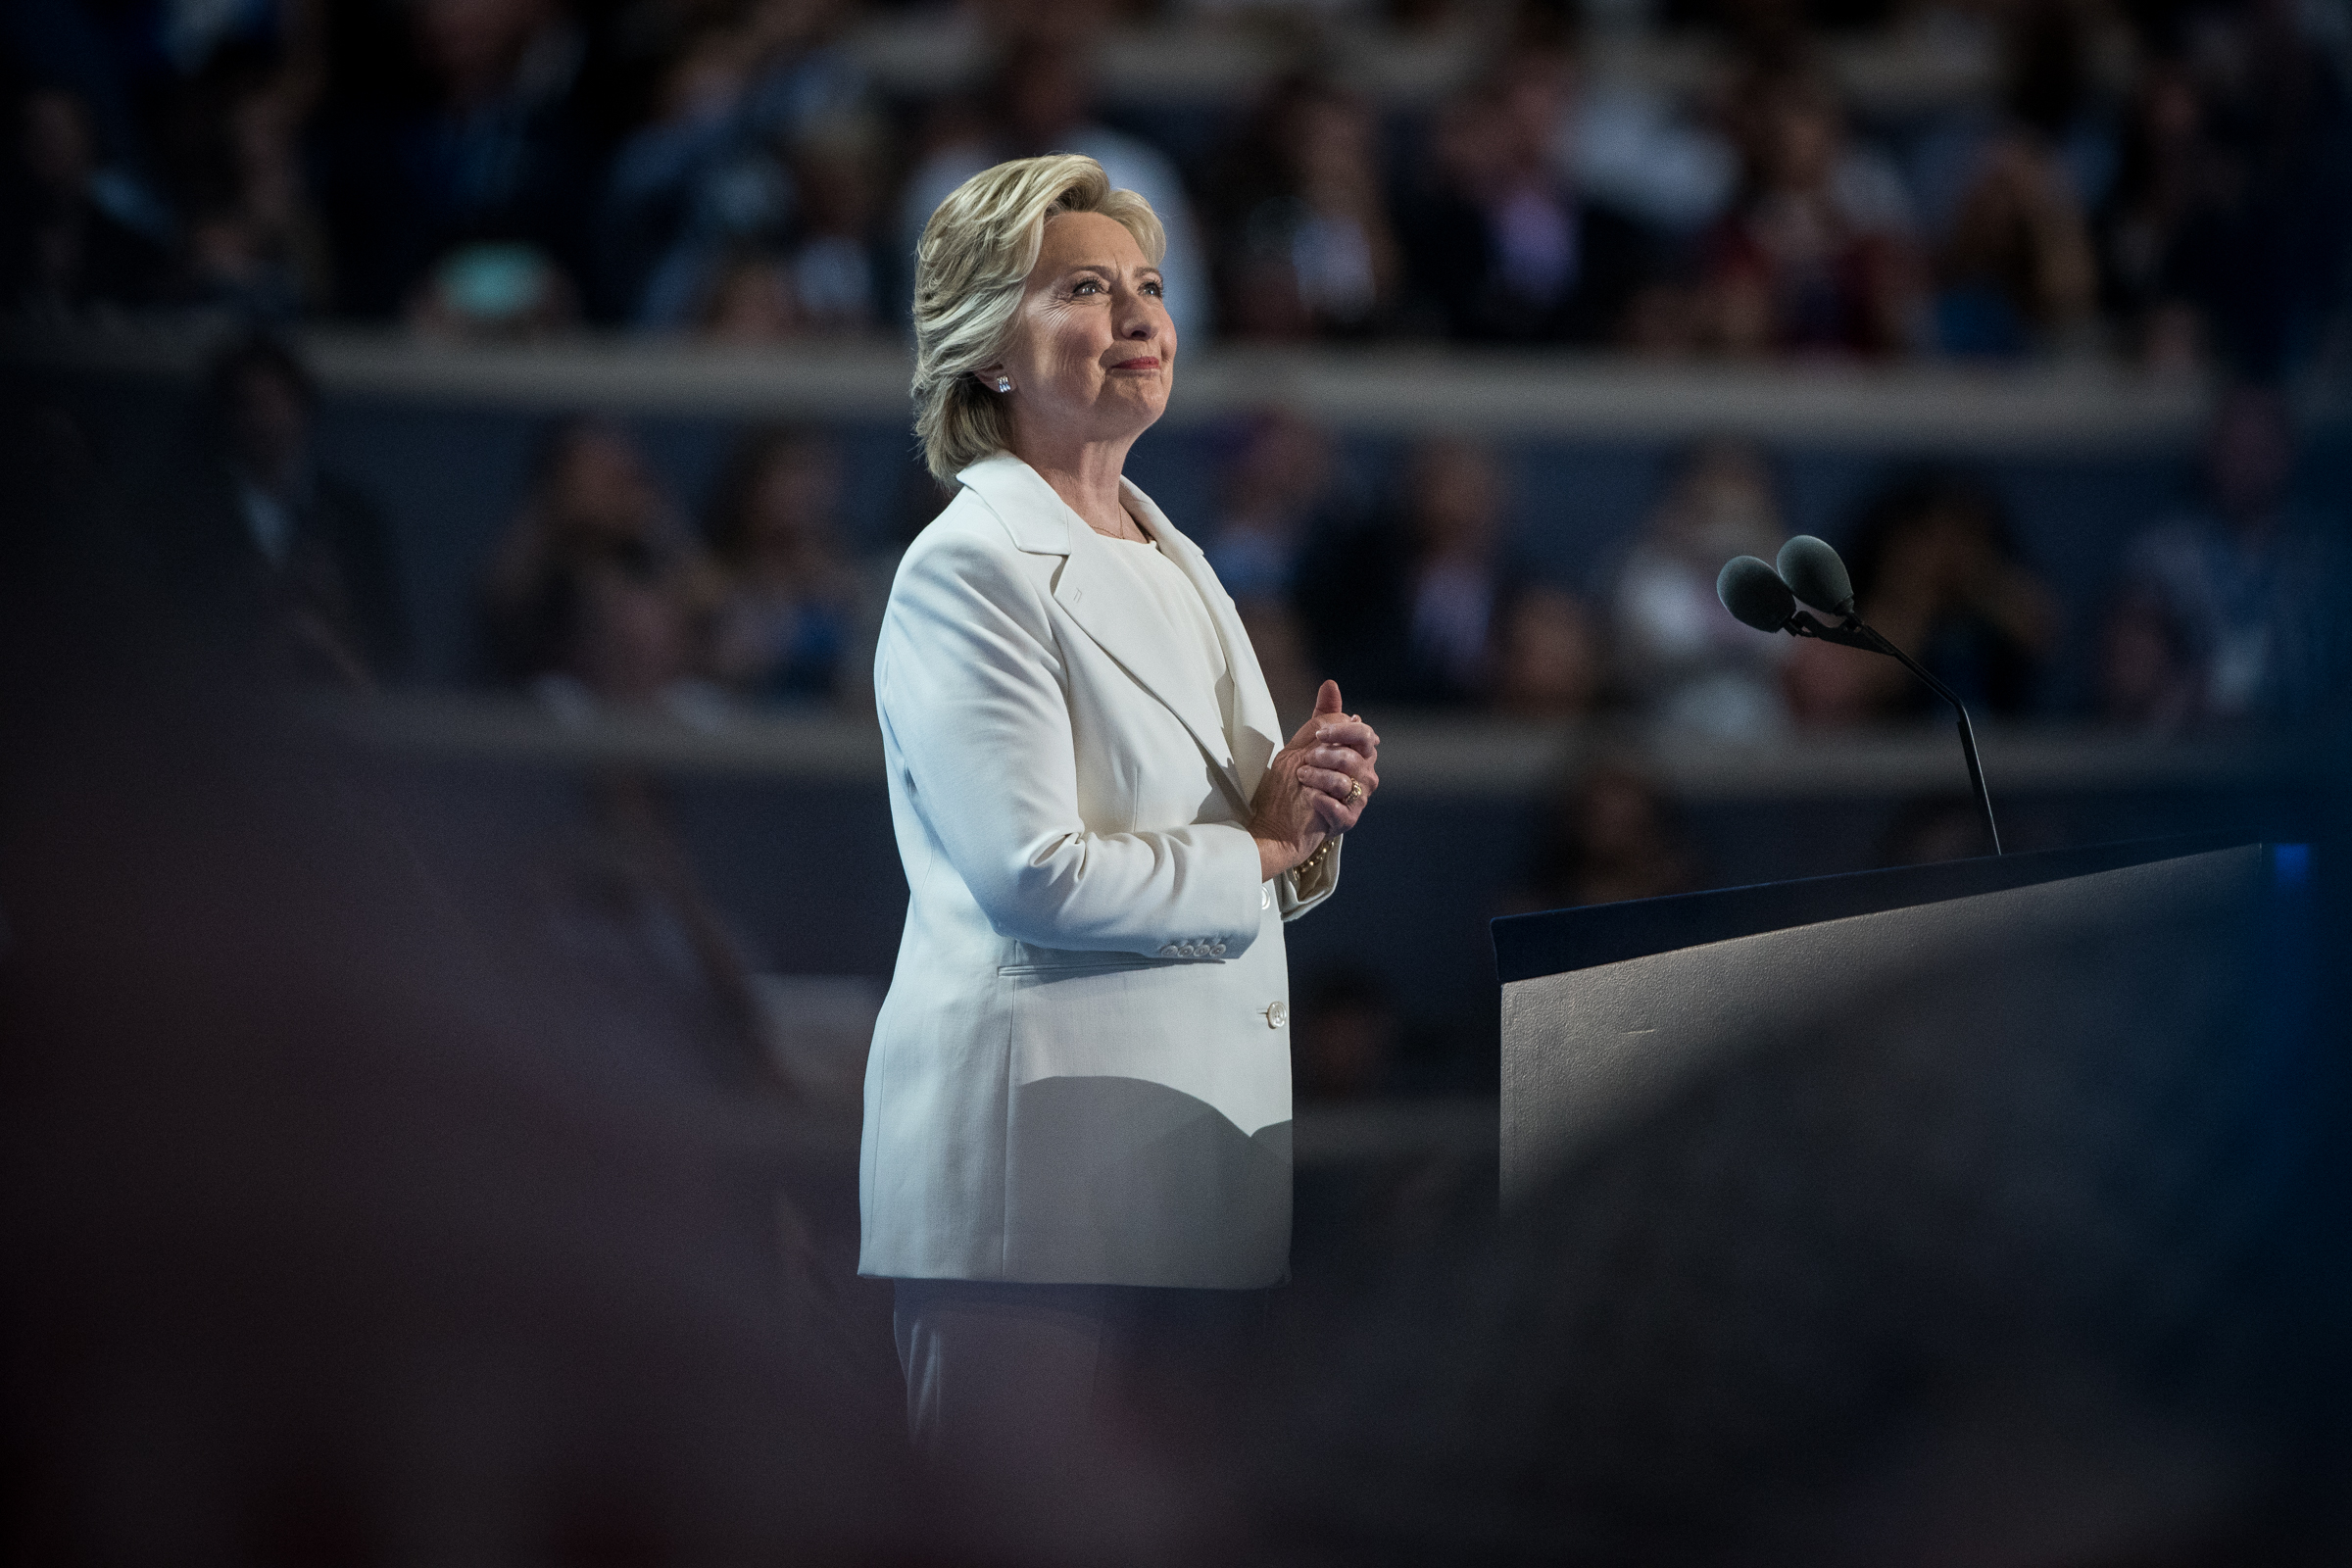 Democratic presidential nominee Hillary Clinton greets the delegates at the Democratic National Convention inside the Wells Fargo Center in Philadelphia on Thursday July 28, 2016. (Michael Ares /Philadelphia Inquirer)